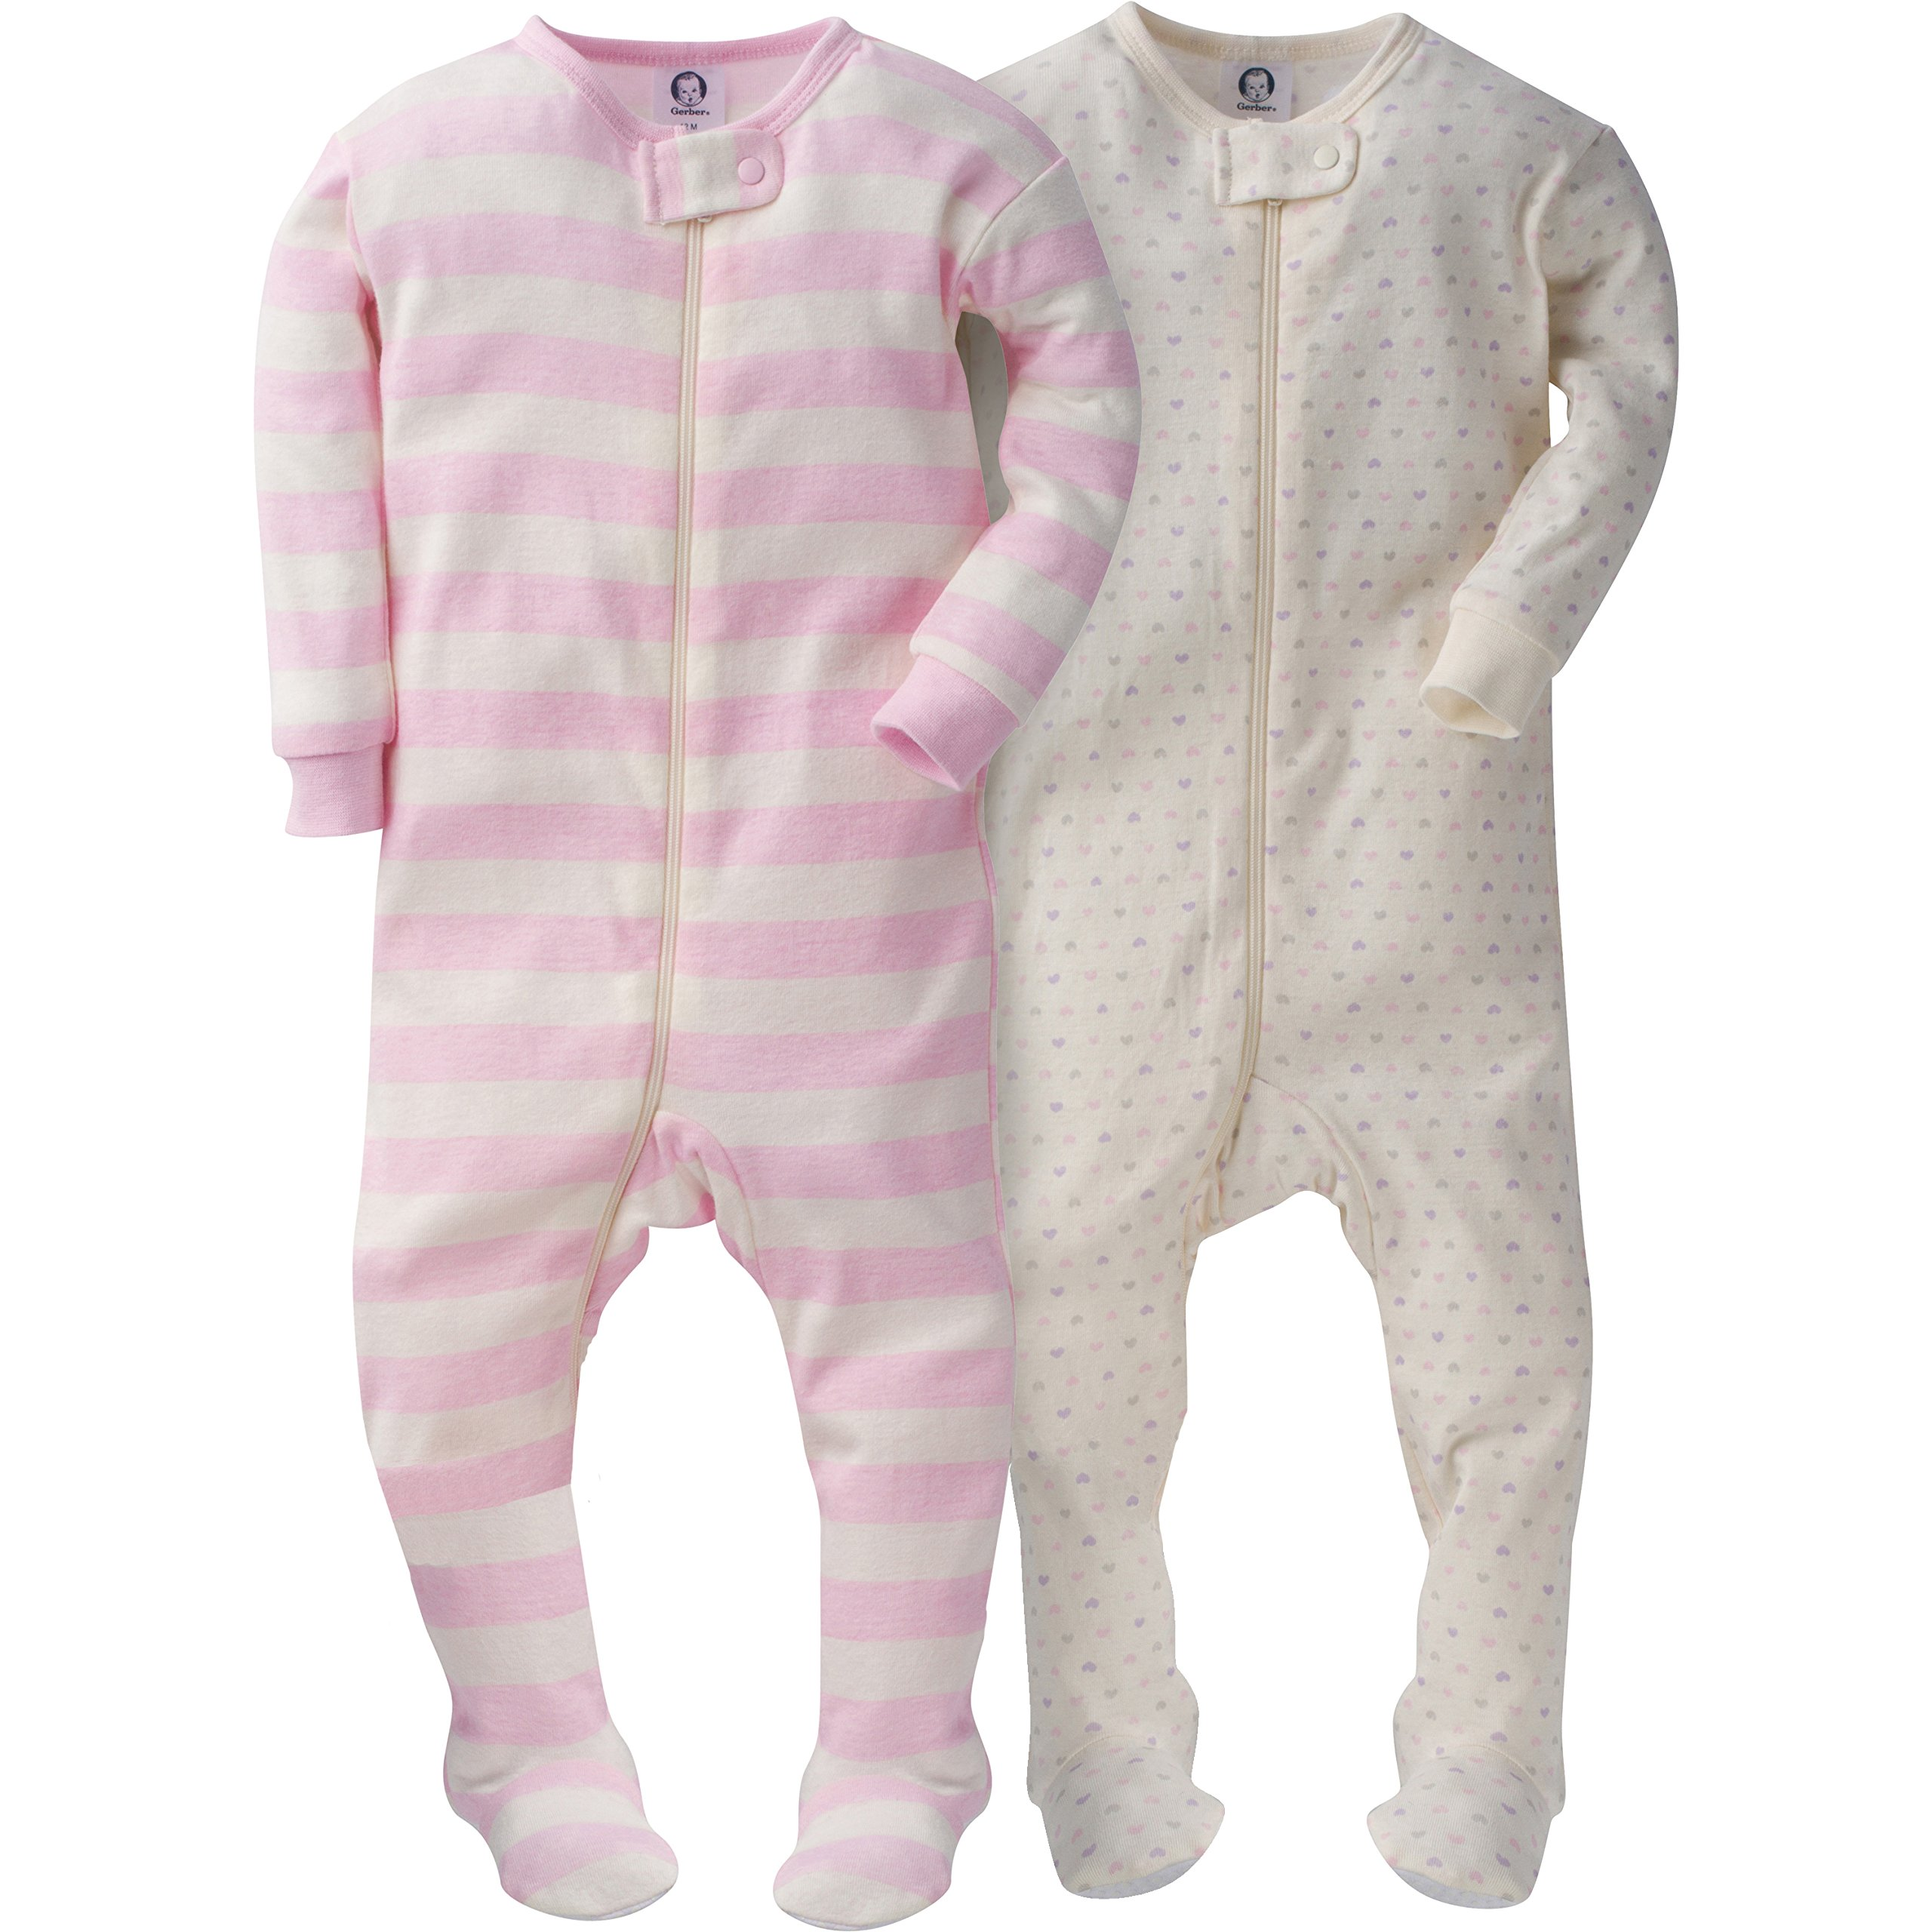 Gerber Girls' 2 Pack Footed Sleeper, Tiny Hearts/Stripes, 18 Months